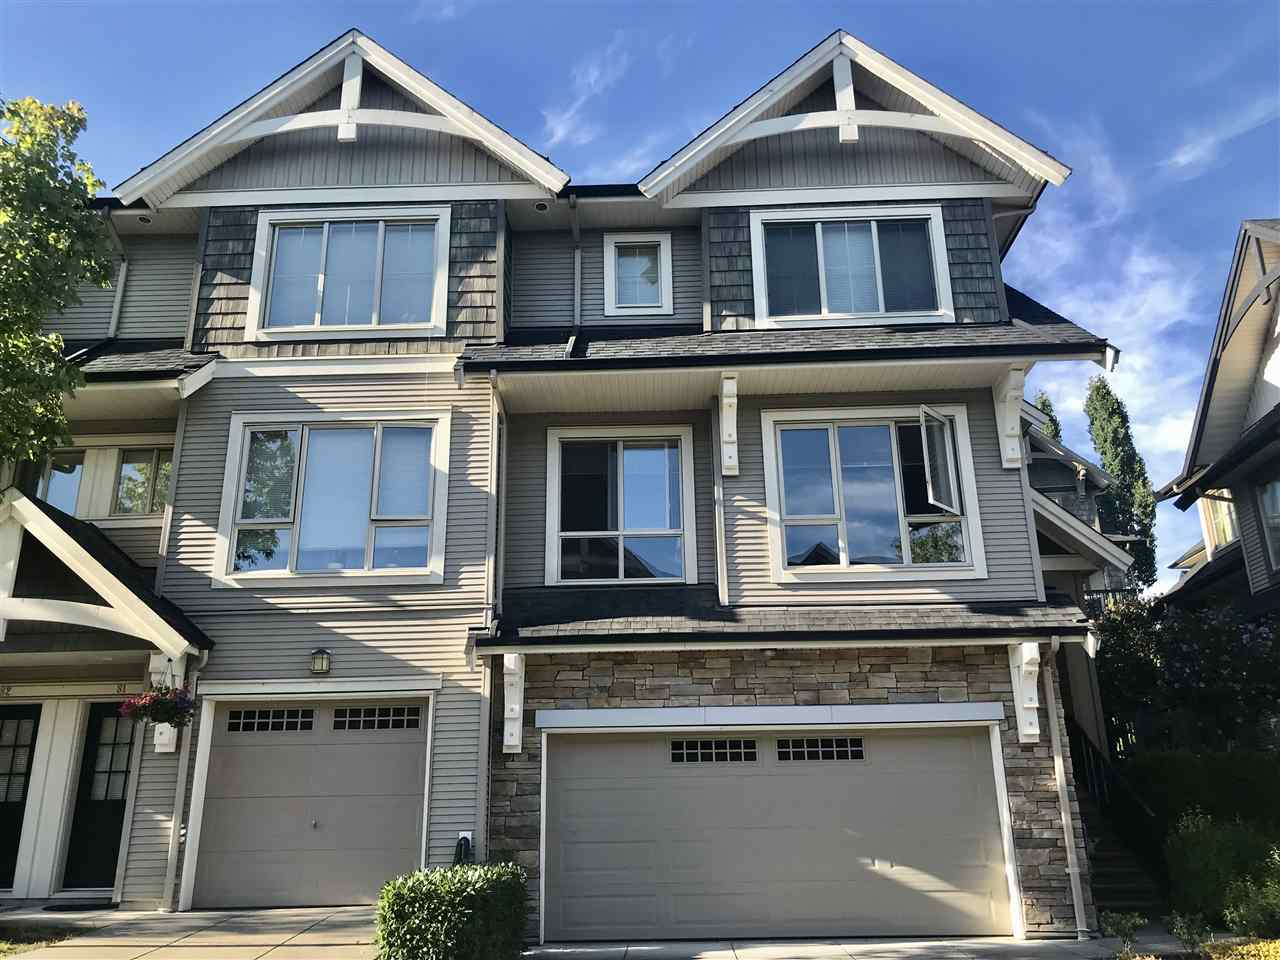 80 1357 PURCELL DRIVE - Westwood Plateau Townhouse for sale, 4 Bedrooms (R2482823) - #1